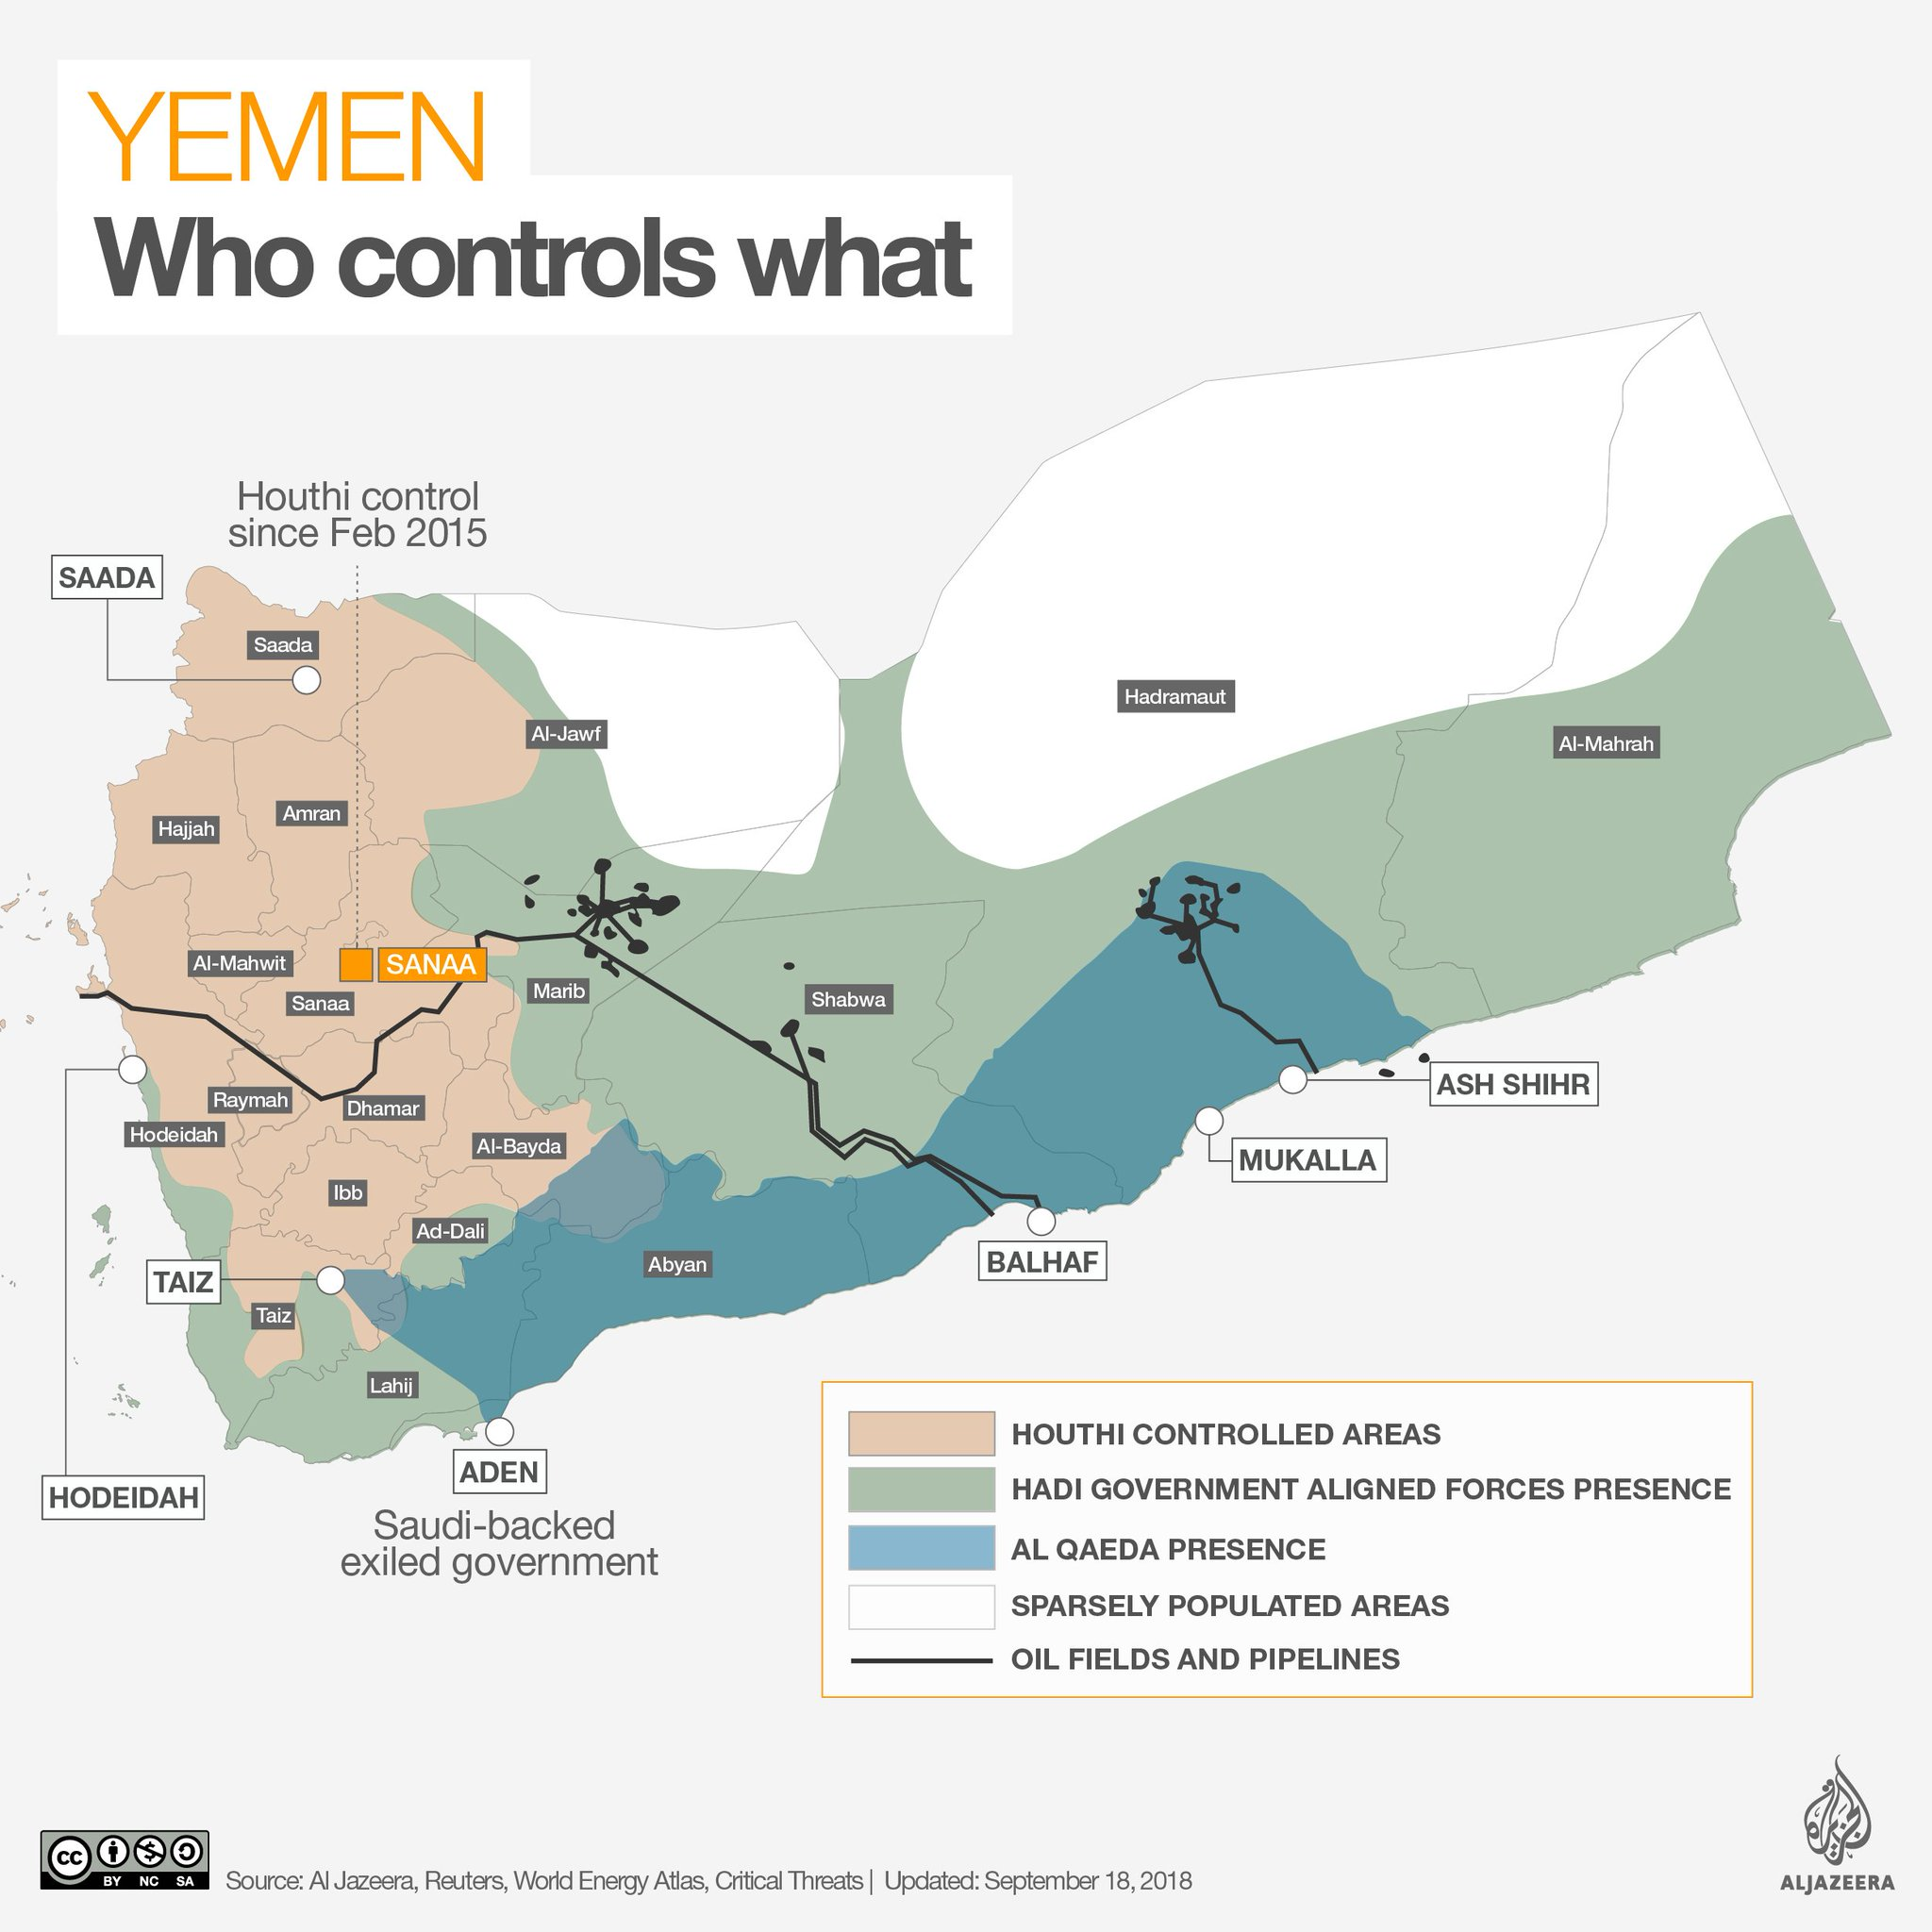 Yemen has been torn apart by conflict since 2014 https://t.co/yC0wR3em8V https://t.co/JIYTLtEuCt